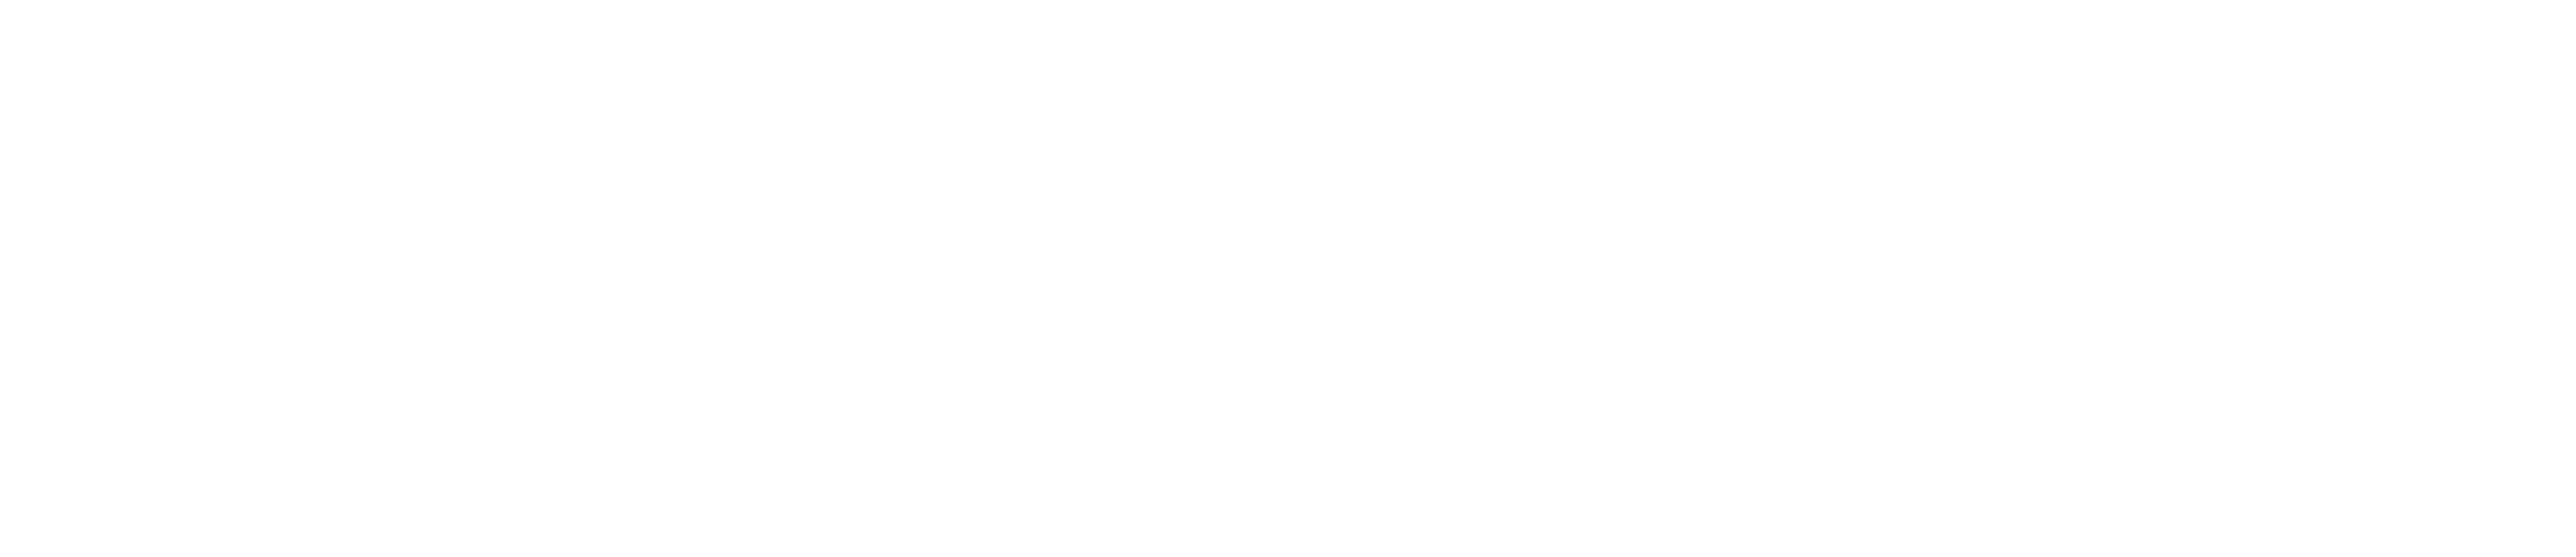 My Technology Specialist, Inc.